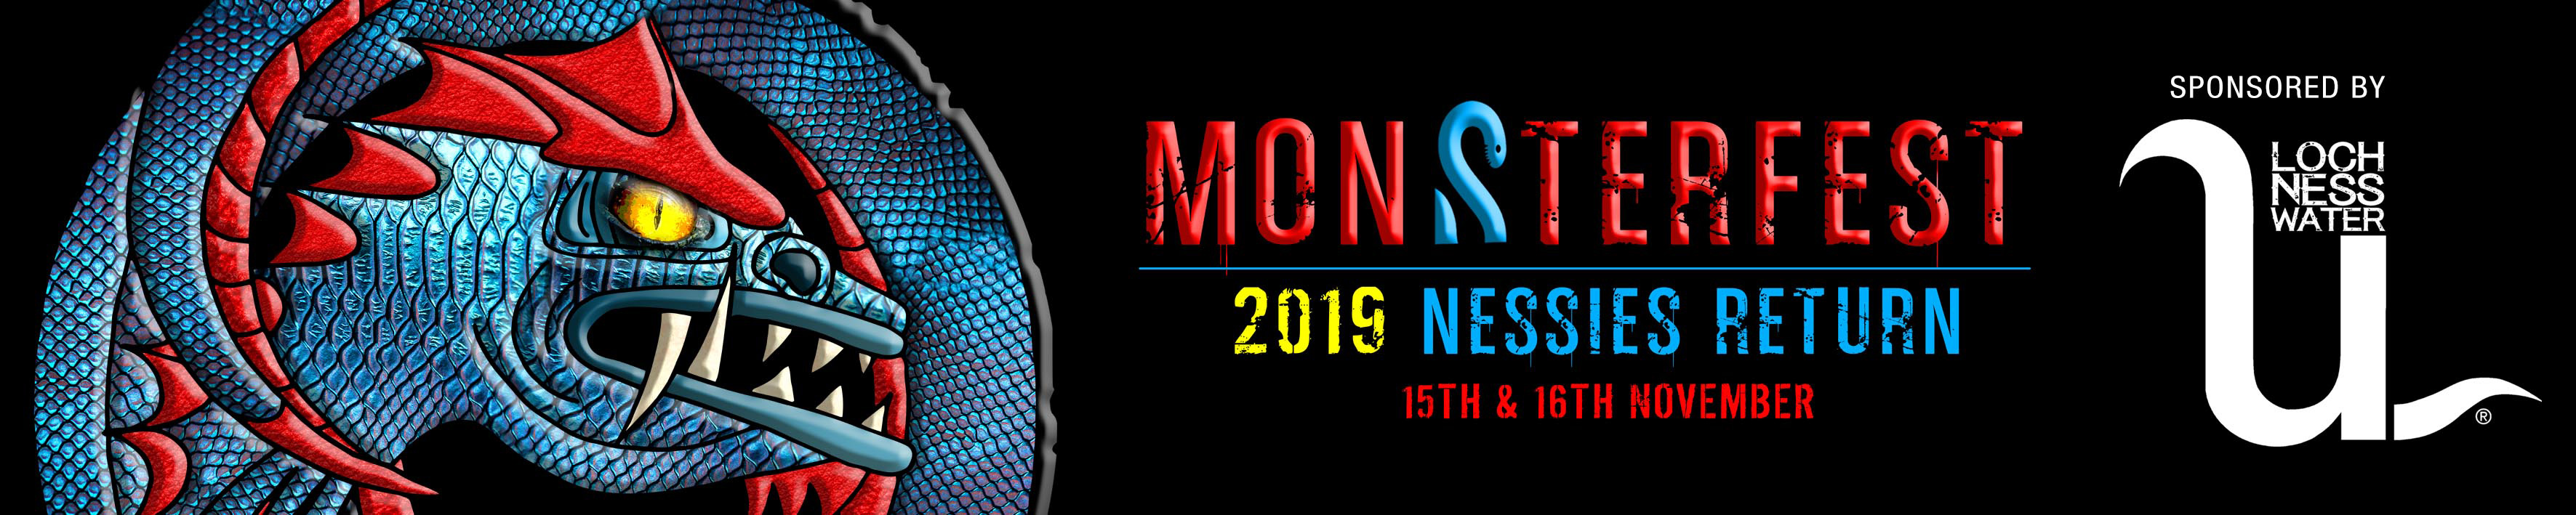 Monsterfest 2019